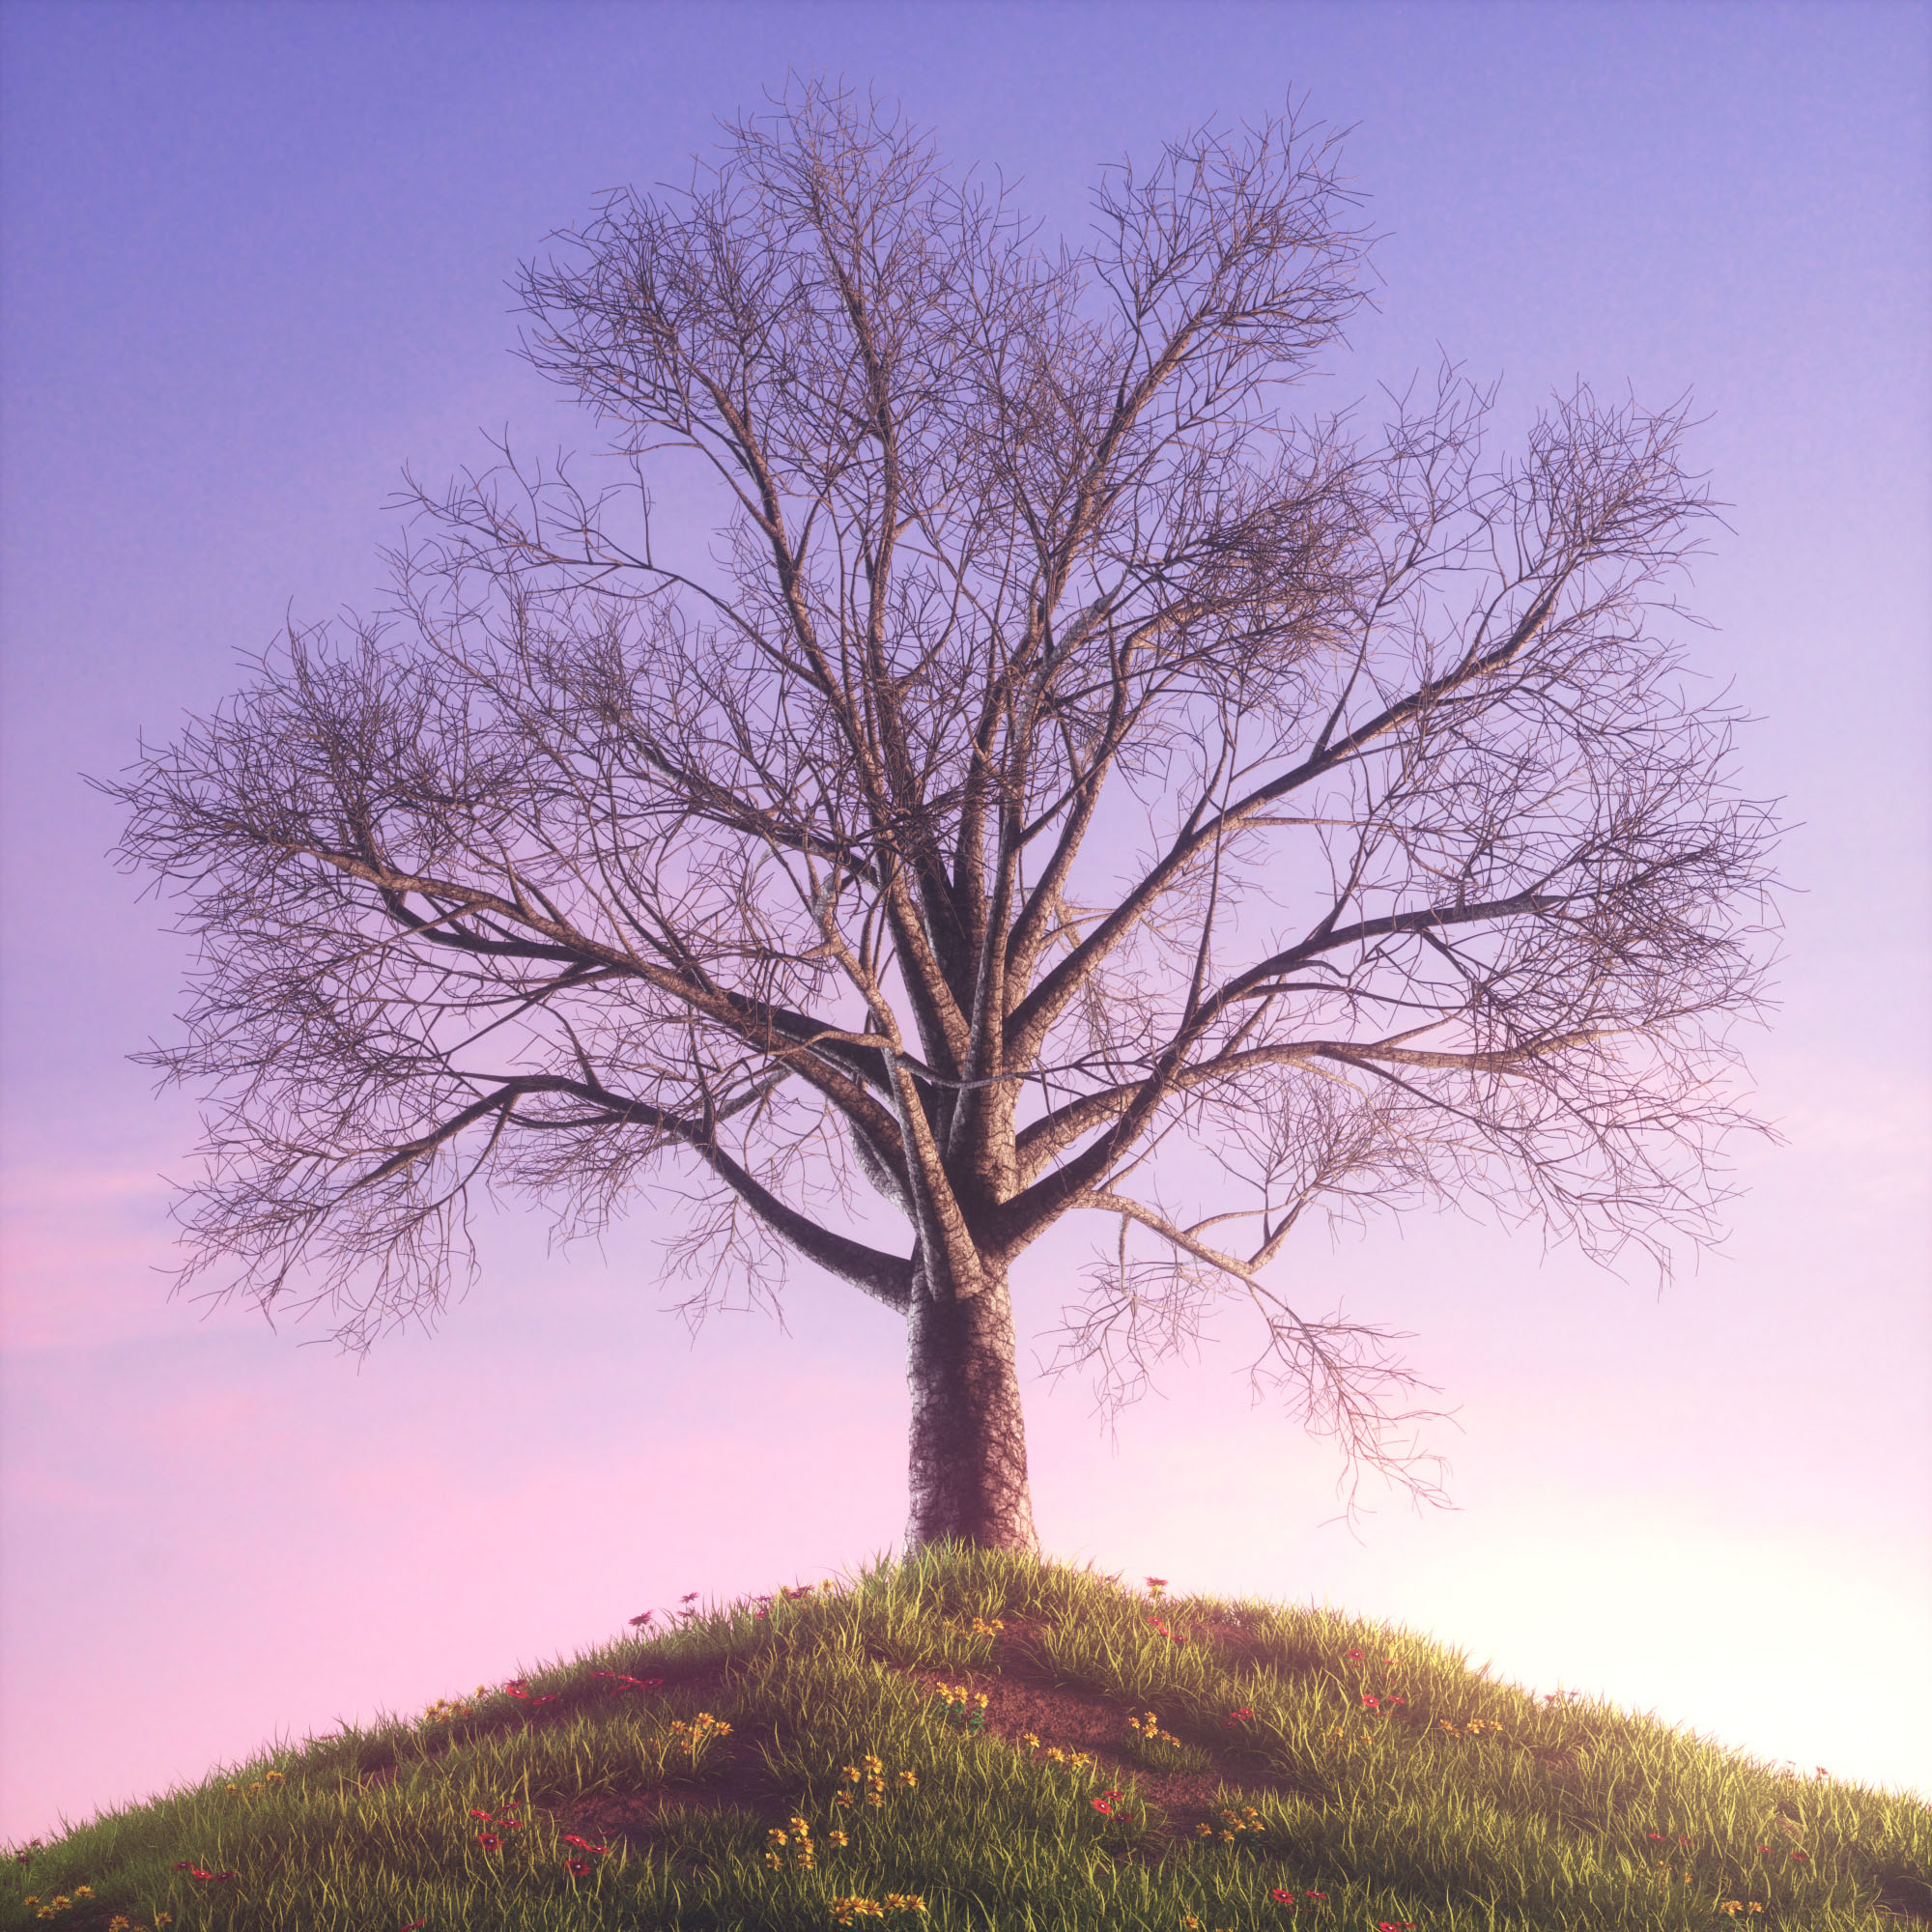 tree_morning_v5-0-00-00-0035